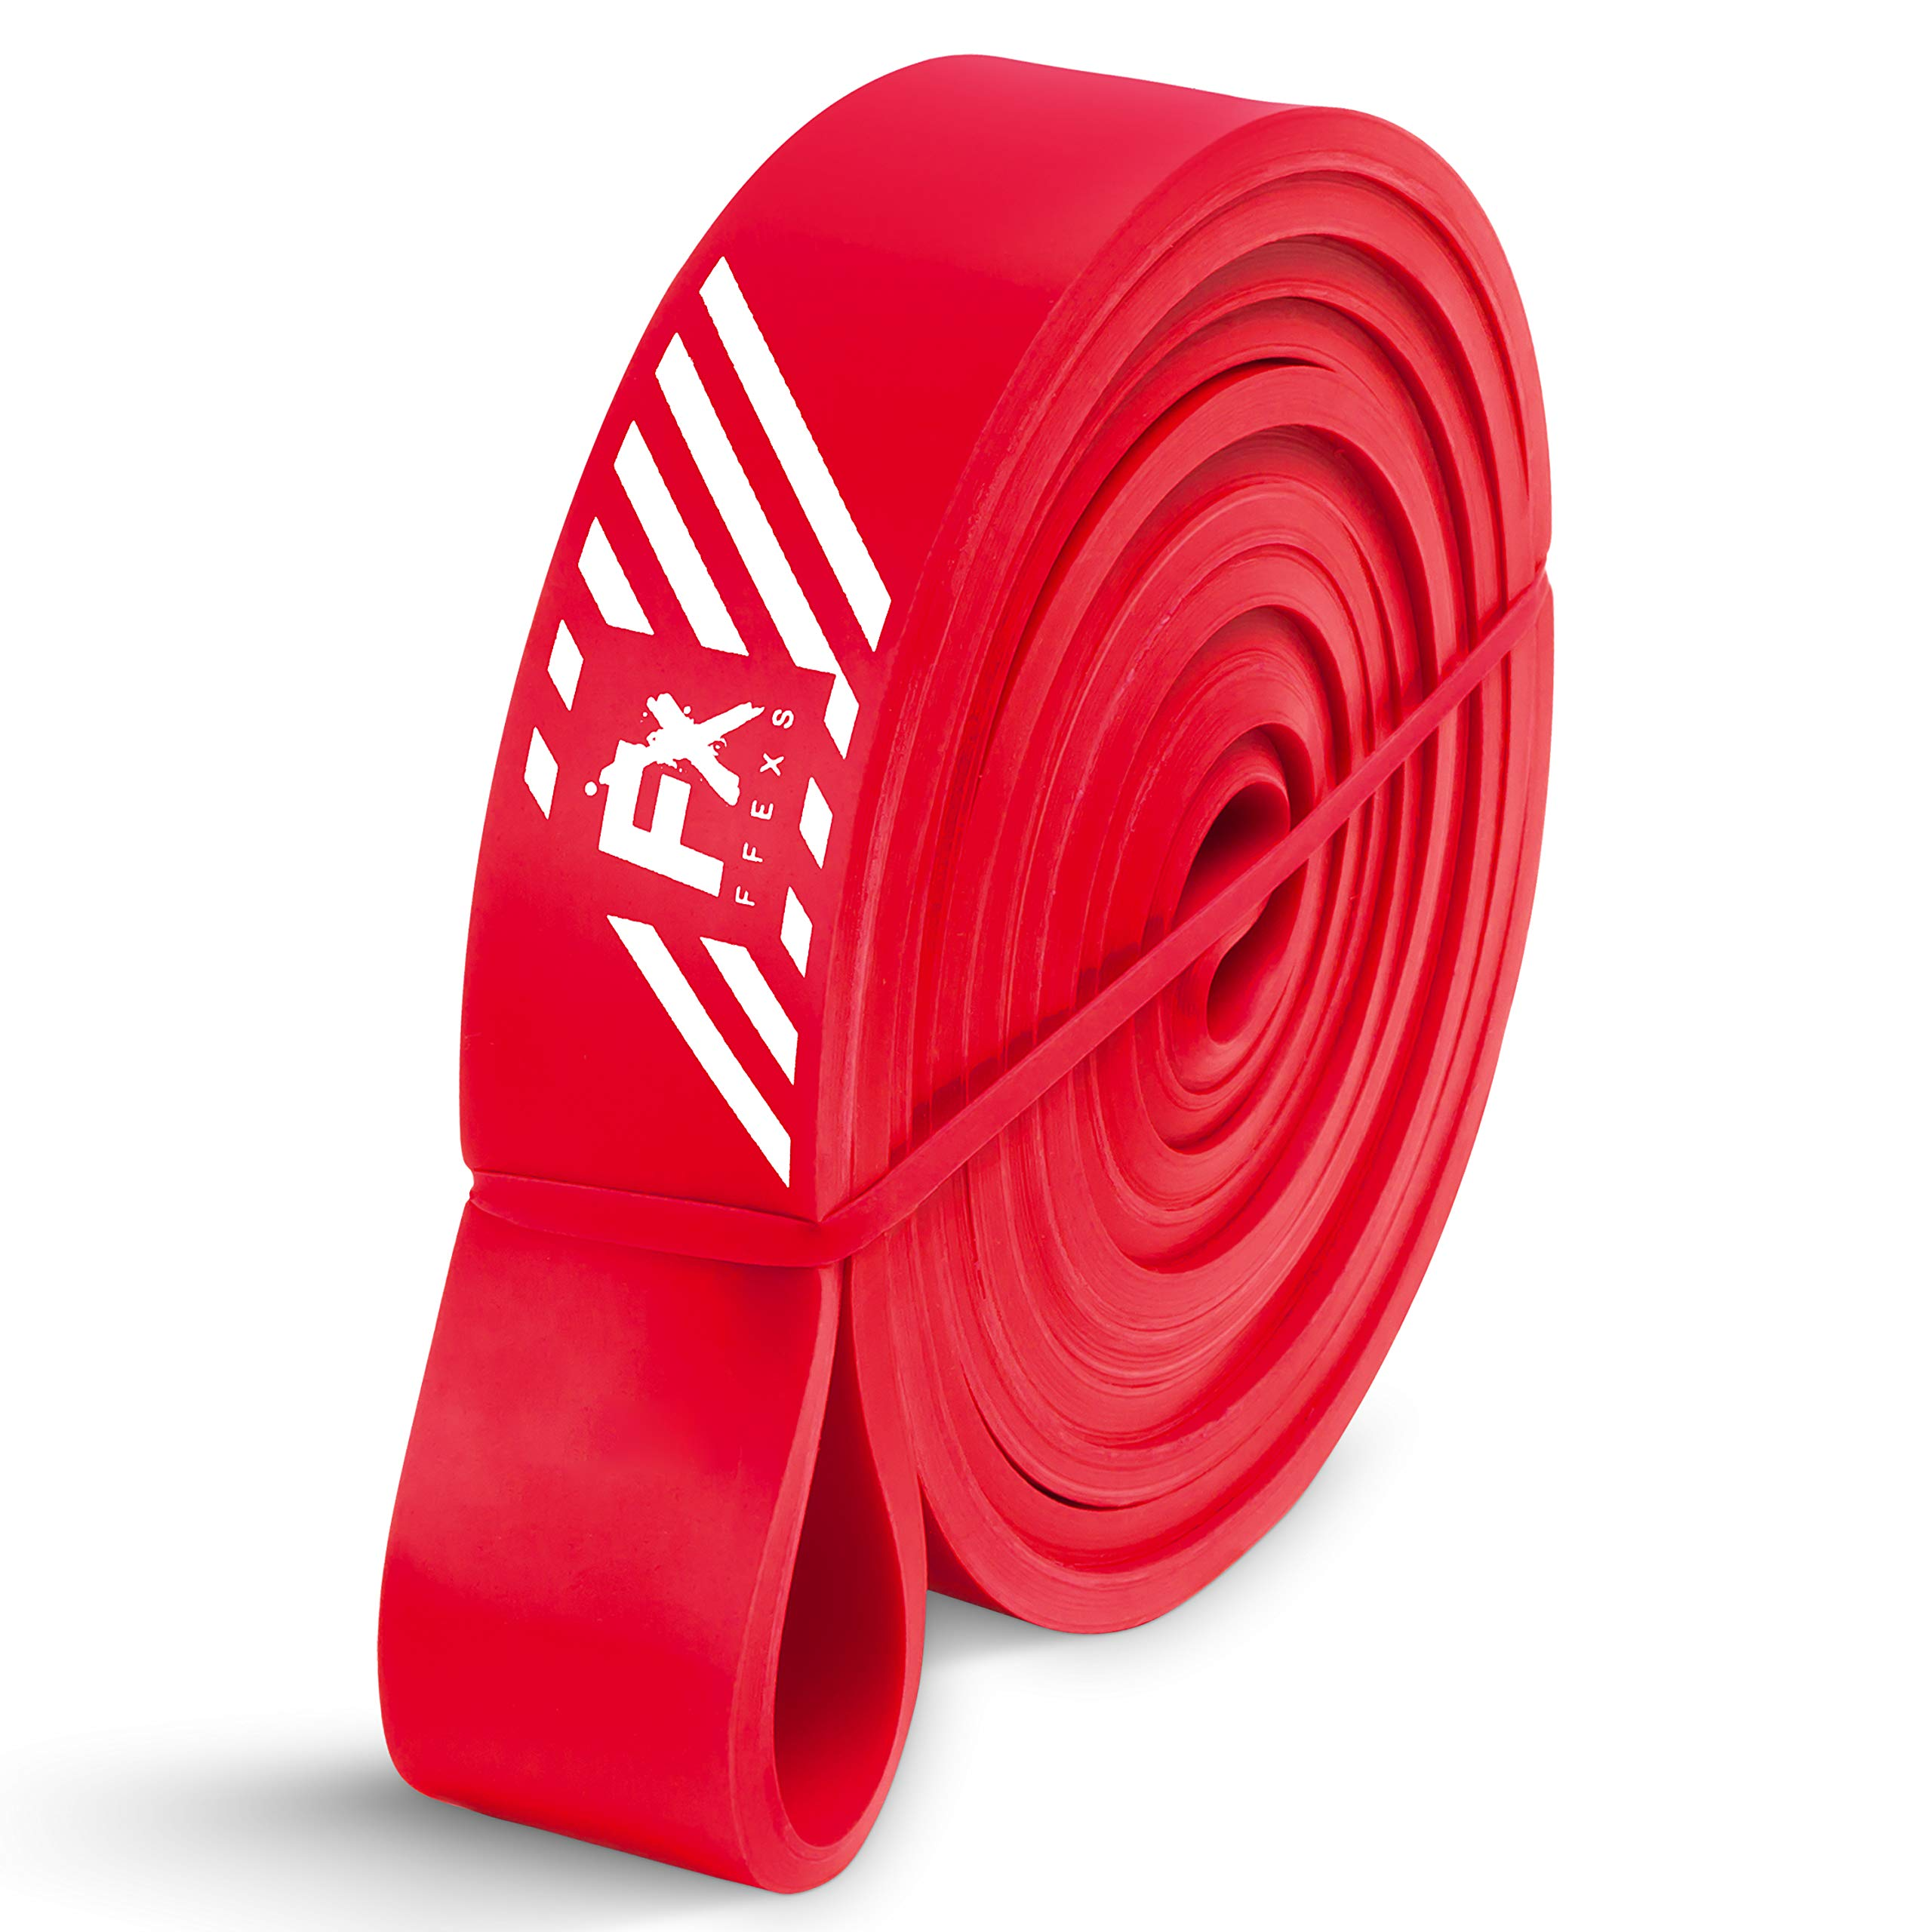 FX FFEXS Premium Pull Up Resistance Bands for Assisted for Pull Up Chin Up Exercise (Red)